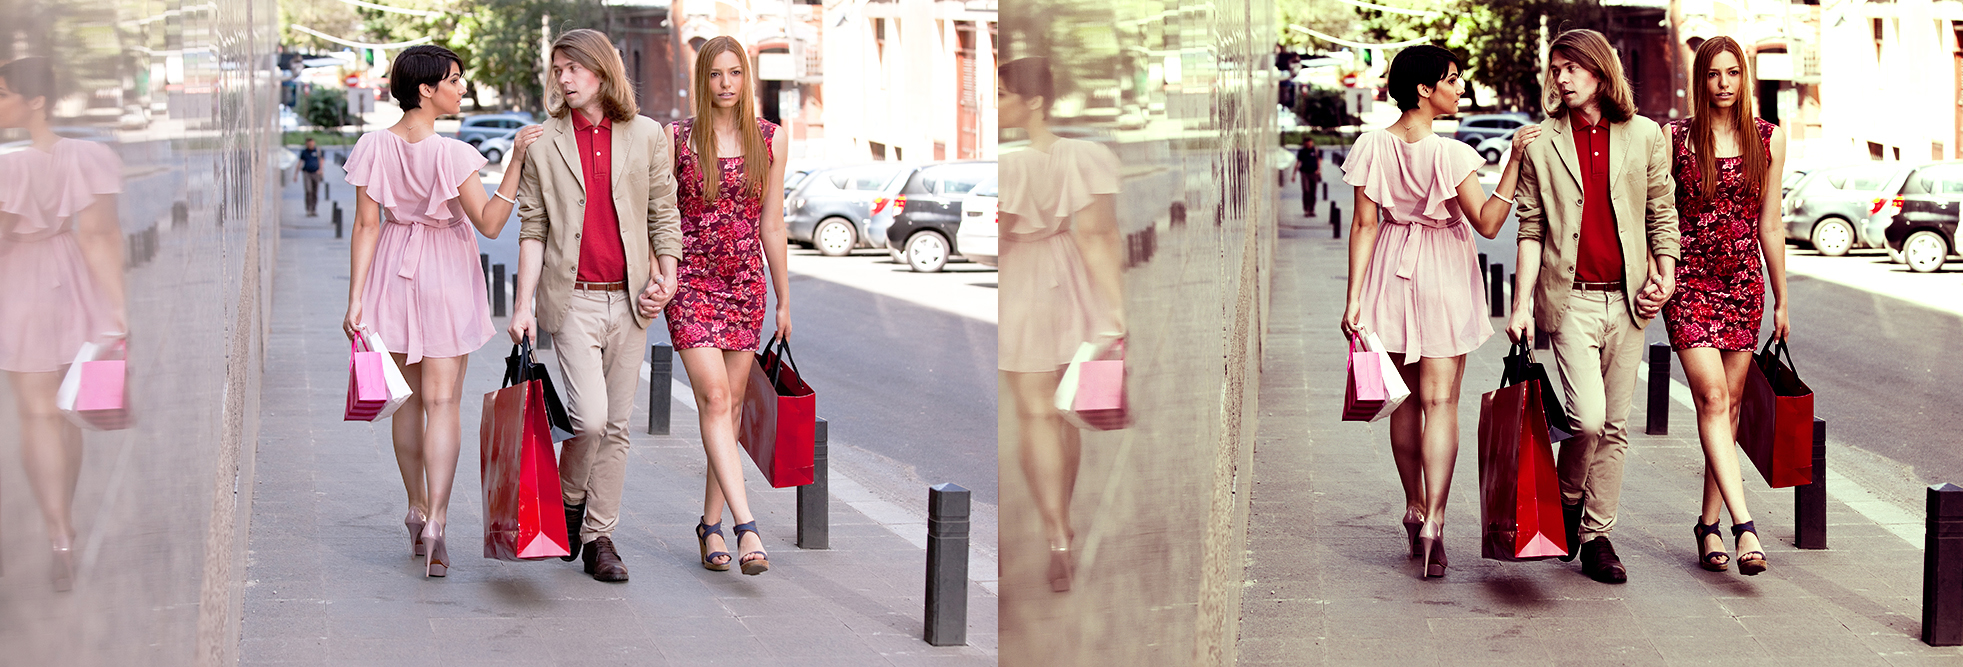 174 Fashion Model Photoshop Actions Collection (Action for photoshop CS5,CS6,CC) example image 3